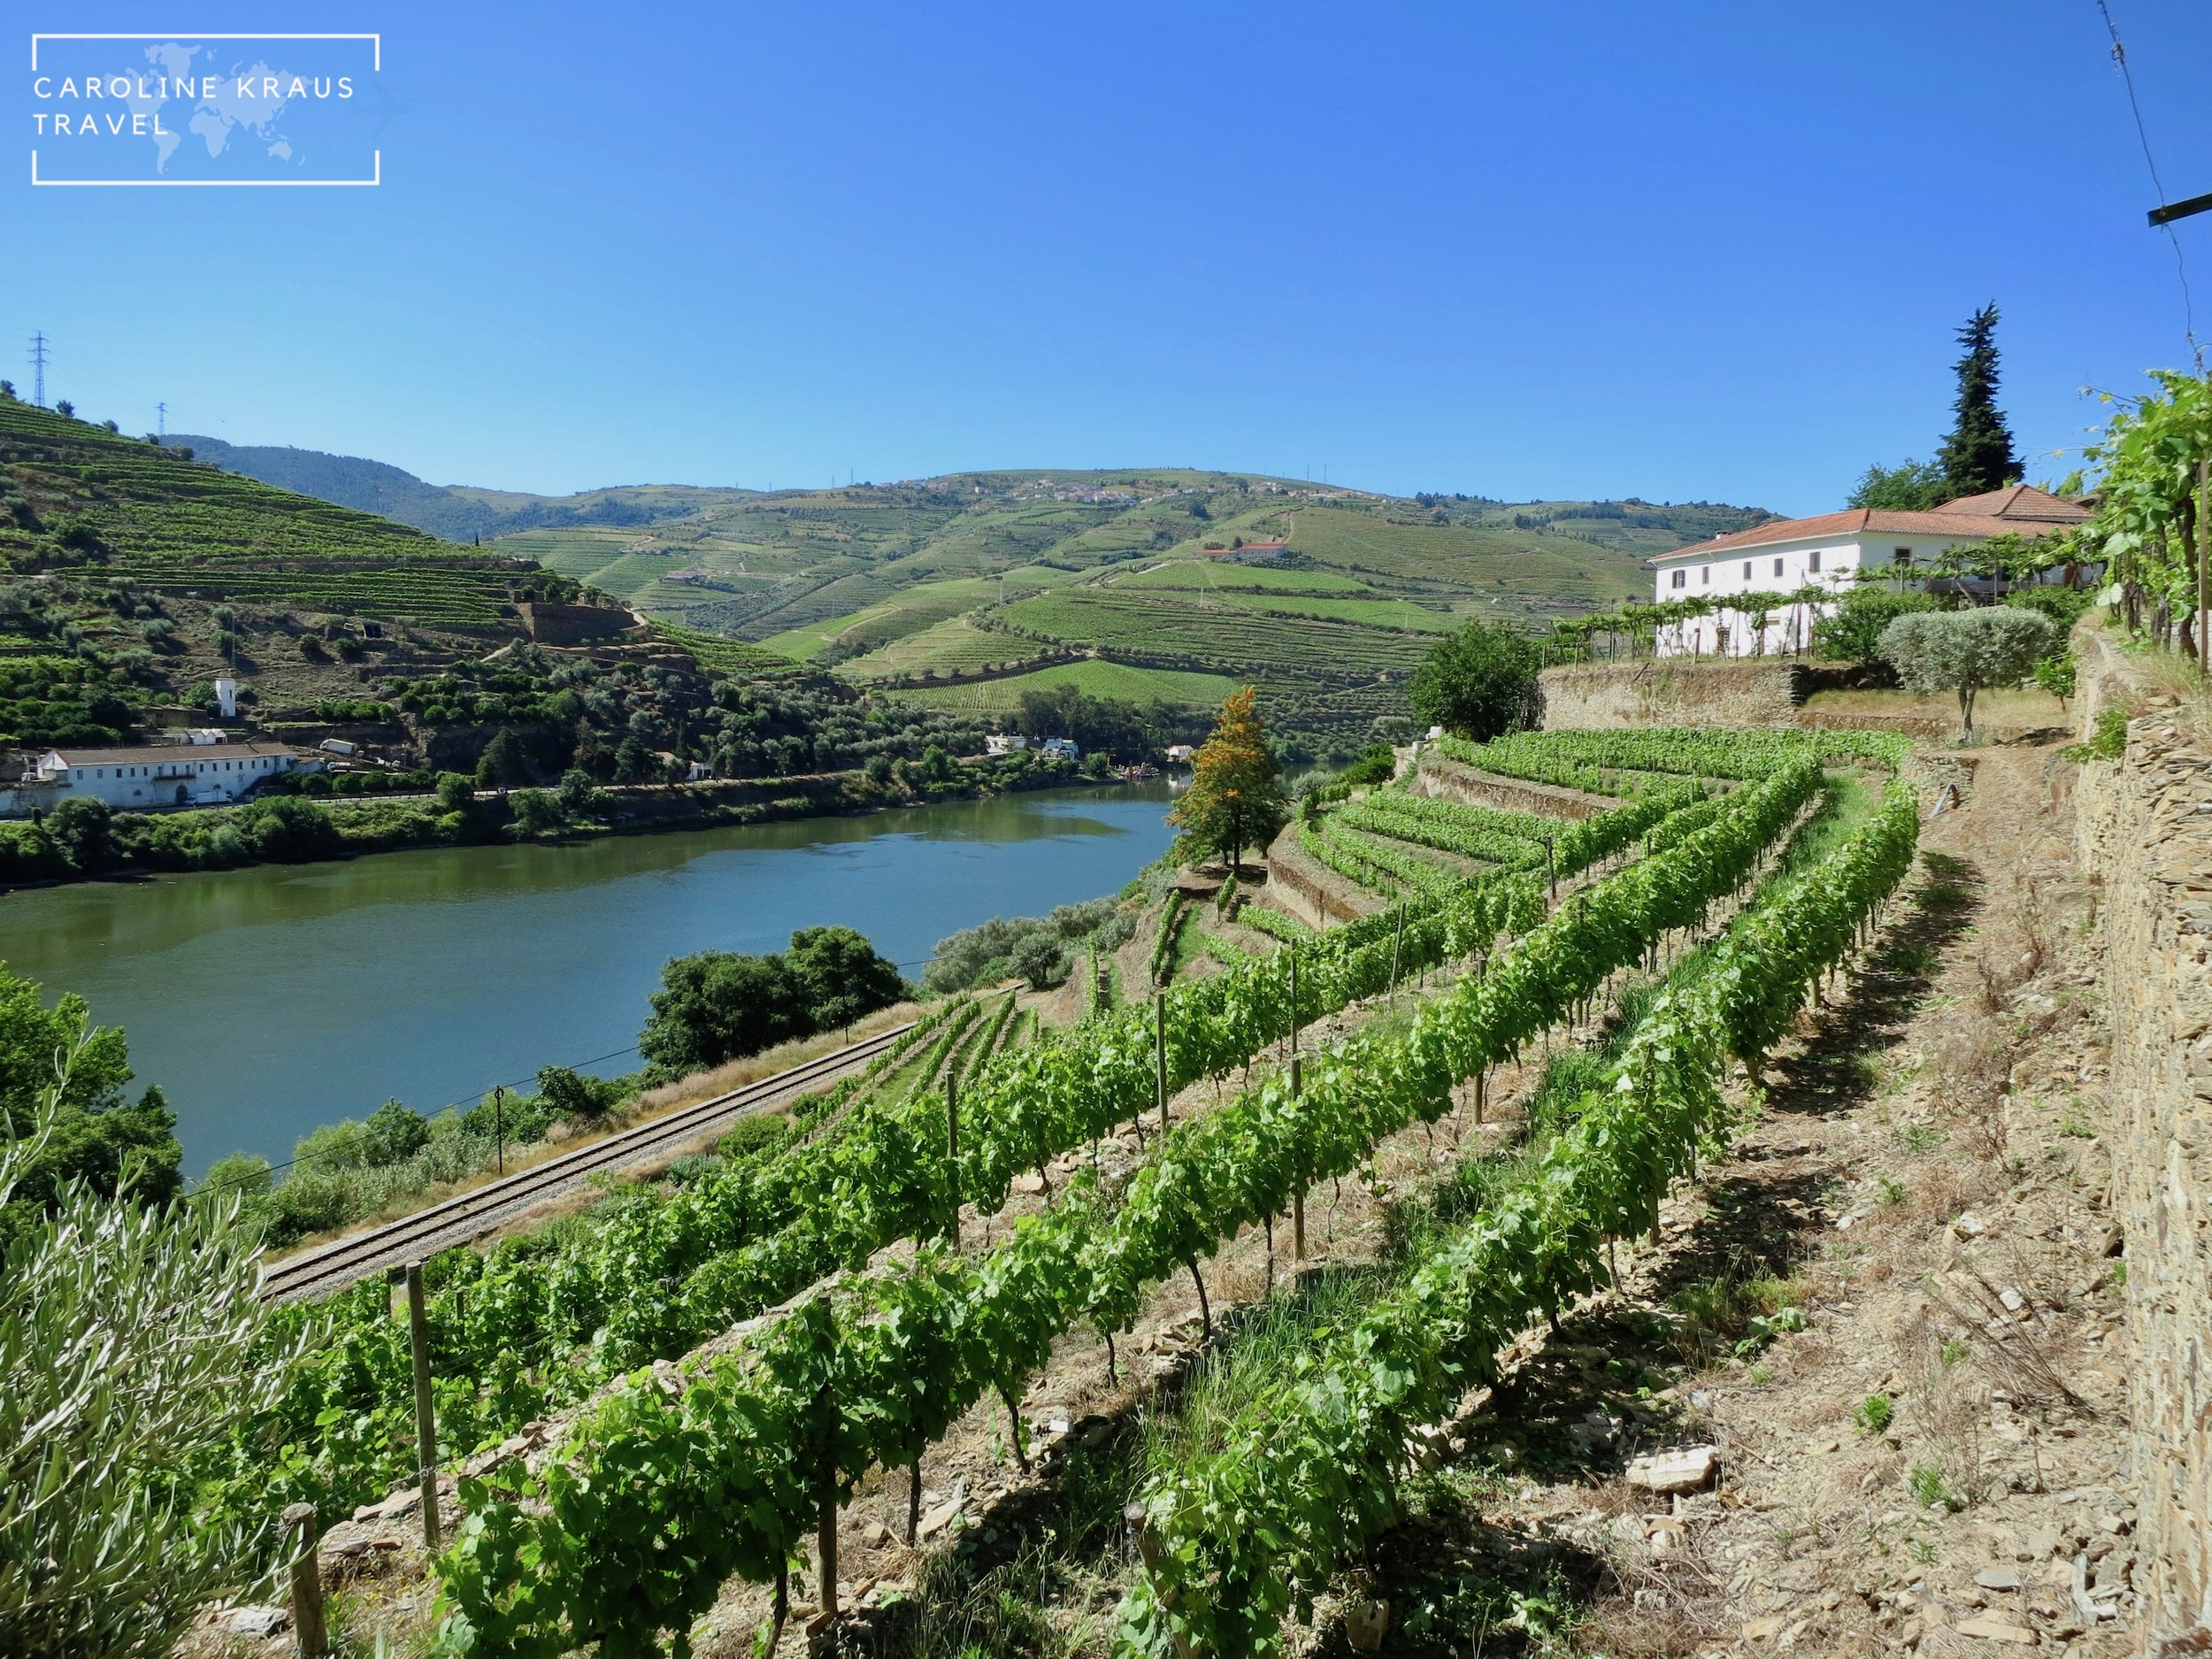 Quinta de la Rosa vineyard in the Douro Valley, Portugal